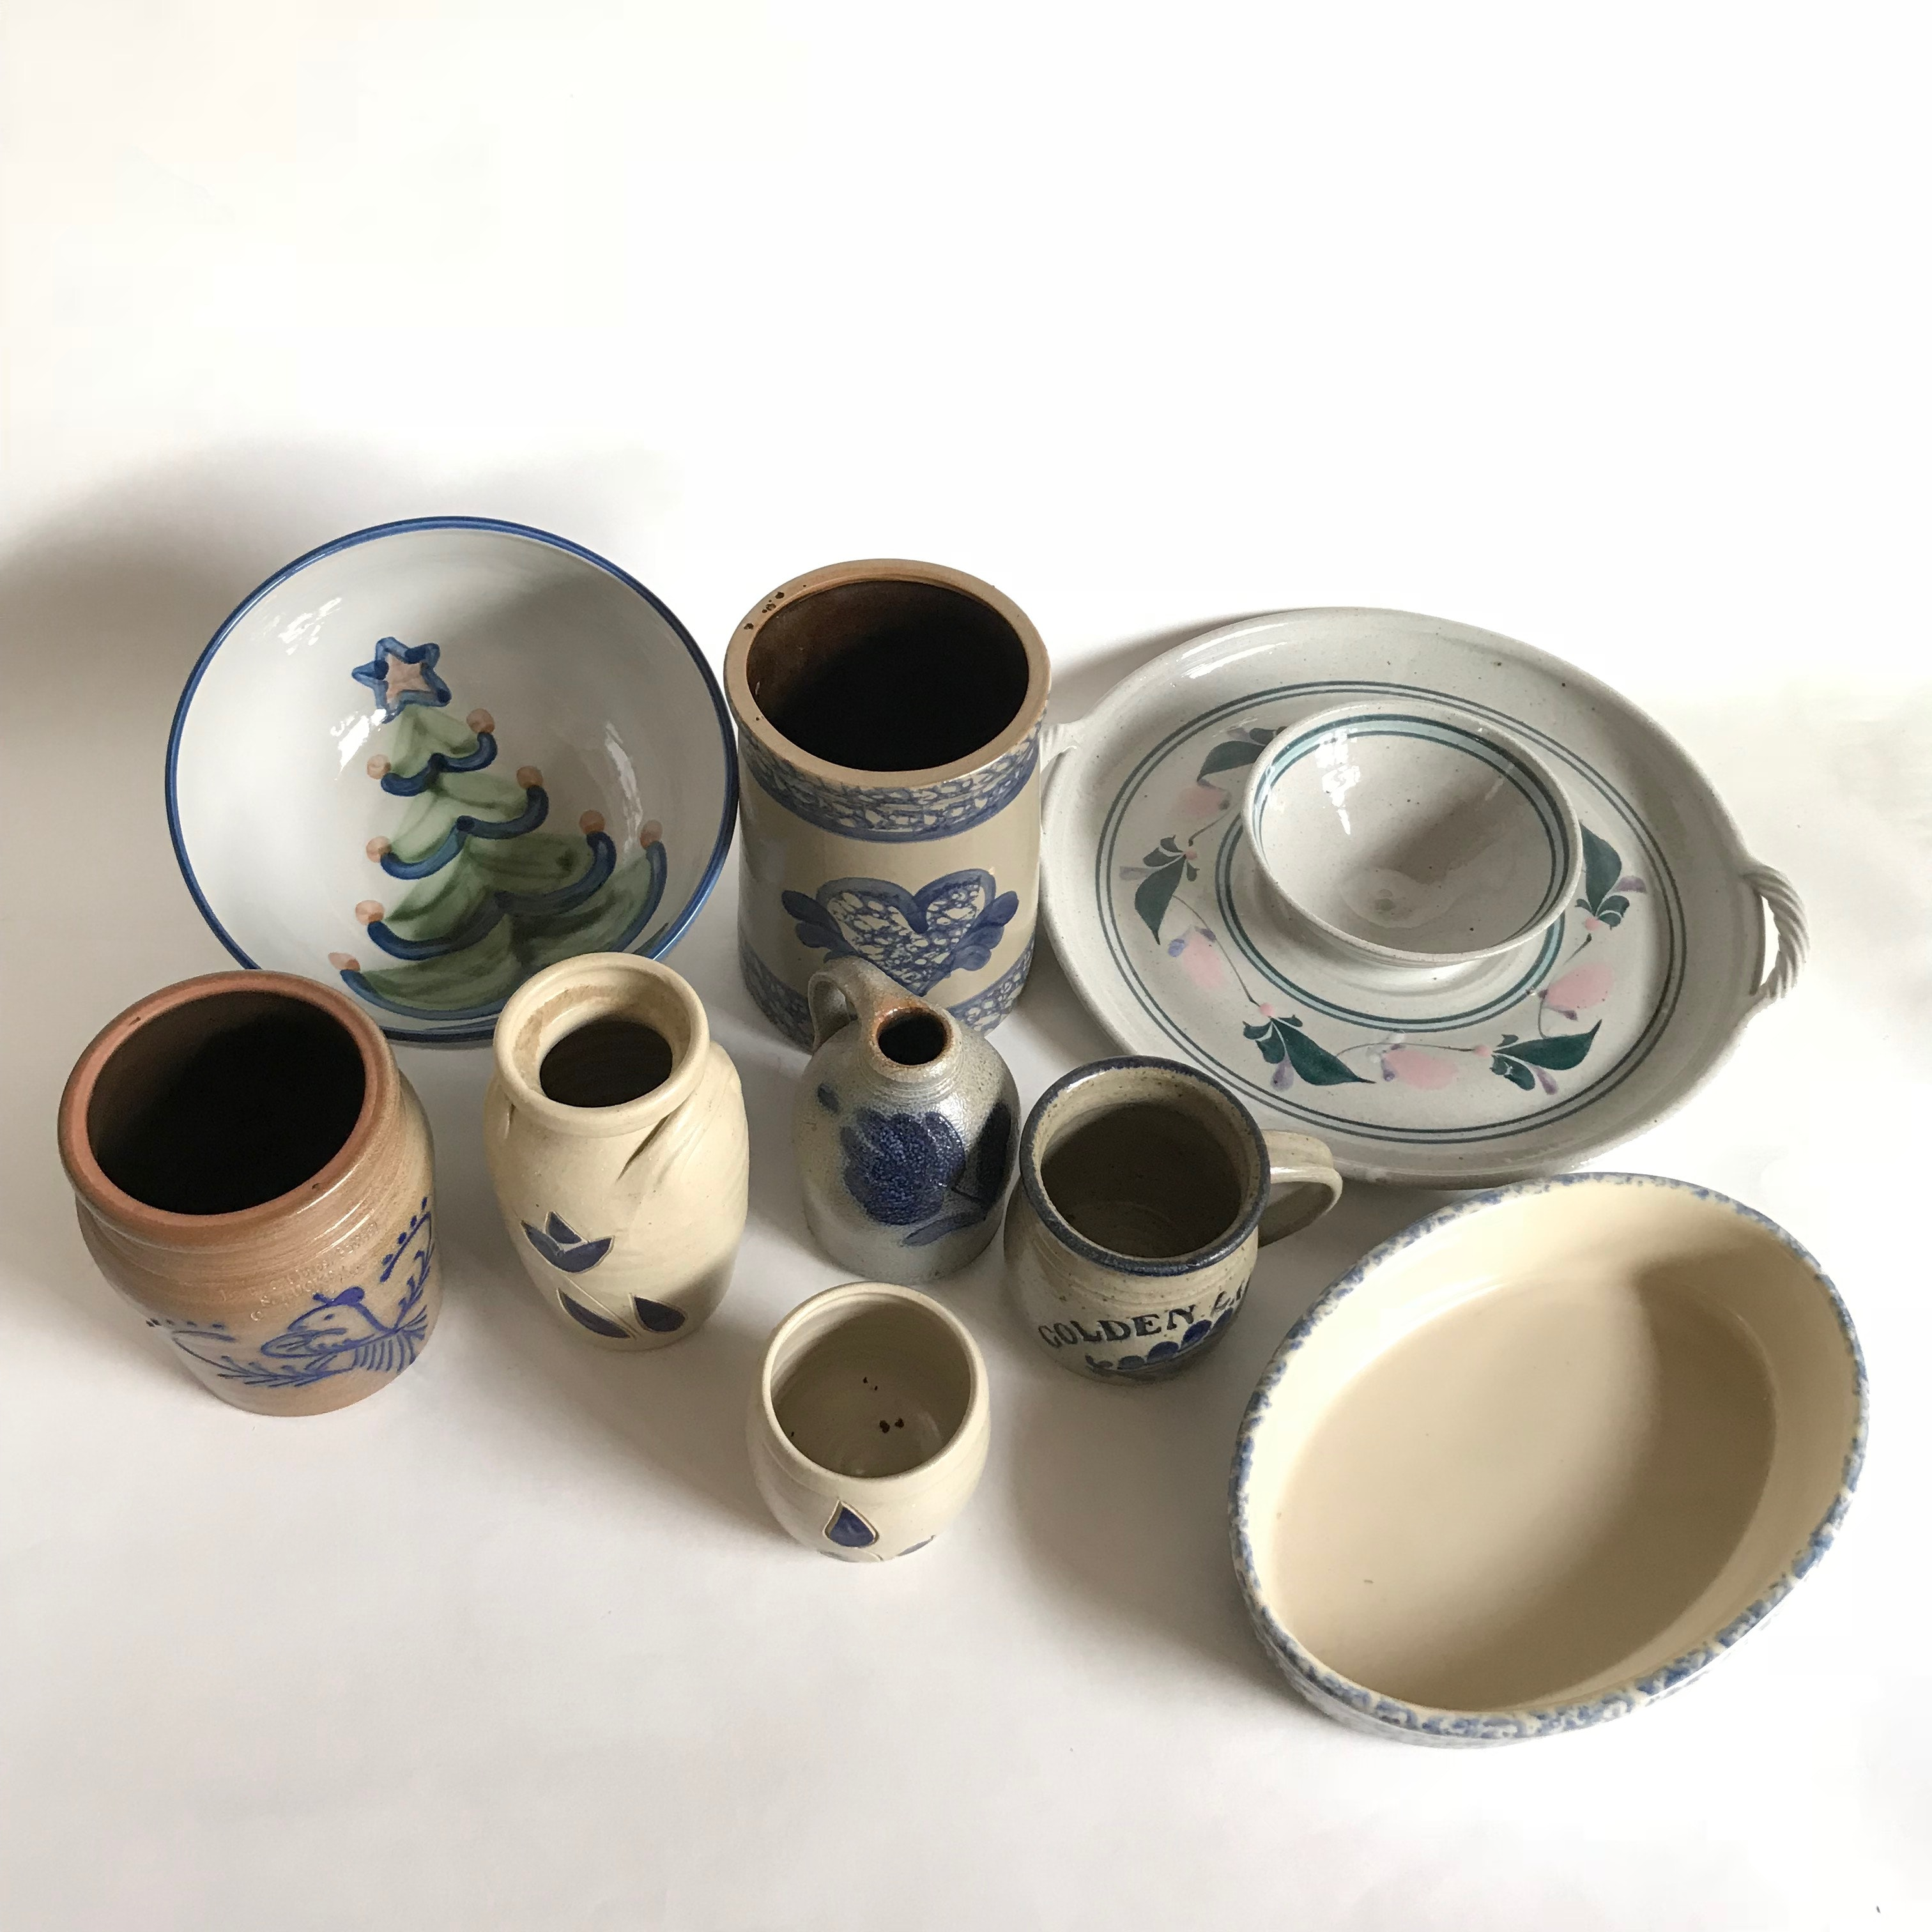 Art Pottery Including M.A. Hadley and Bybee